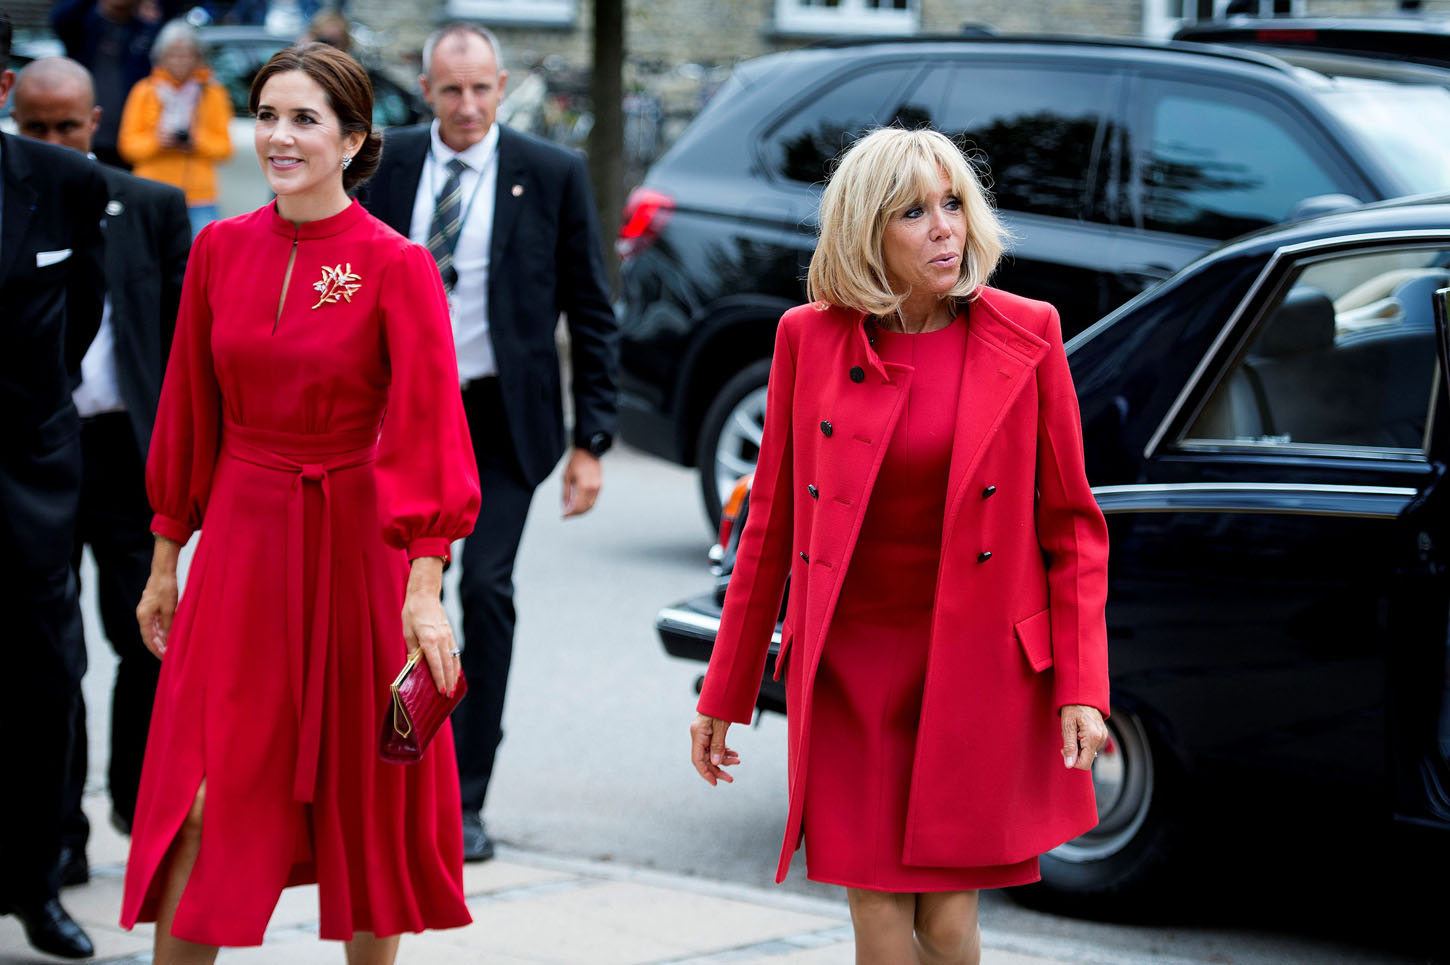 Brigitte Macron and Crown Princess Mary of Denmark visit the Royal Danish Academy of Fine Arts in Copenhagen, Denmark August 28, 2018.   Liselotte Sabroe/Ritzau Scanpix/via REUTERS    ATTENTION EDITORS - THIS IMAGE WAS PROVIDED BY A THIRD PARTY. DENMARK OUT.